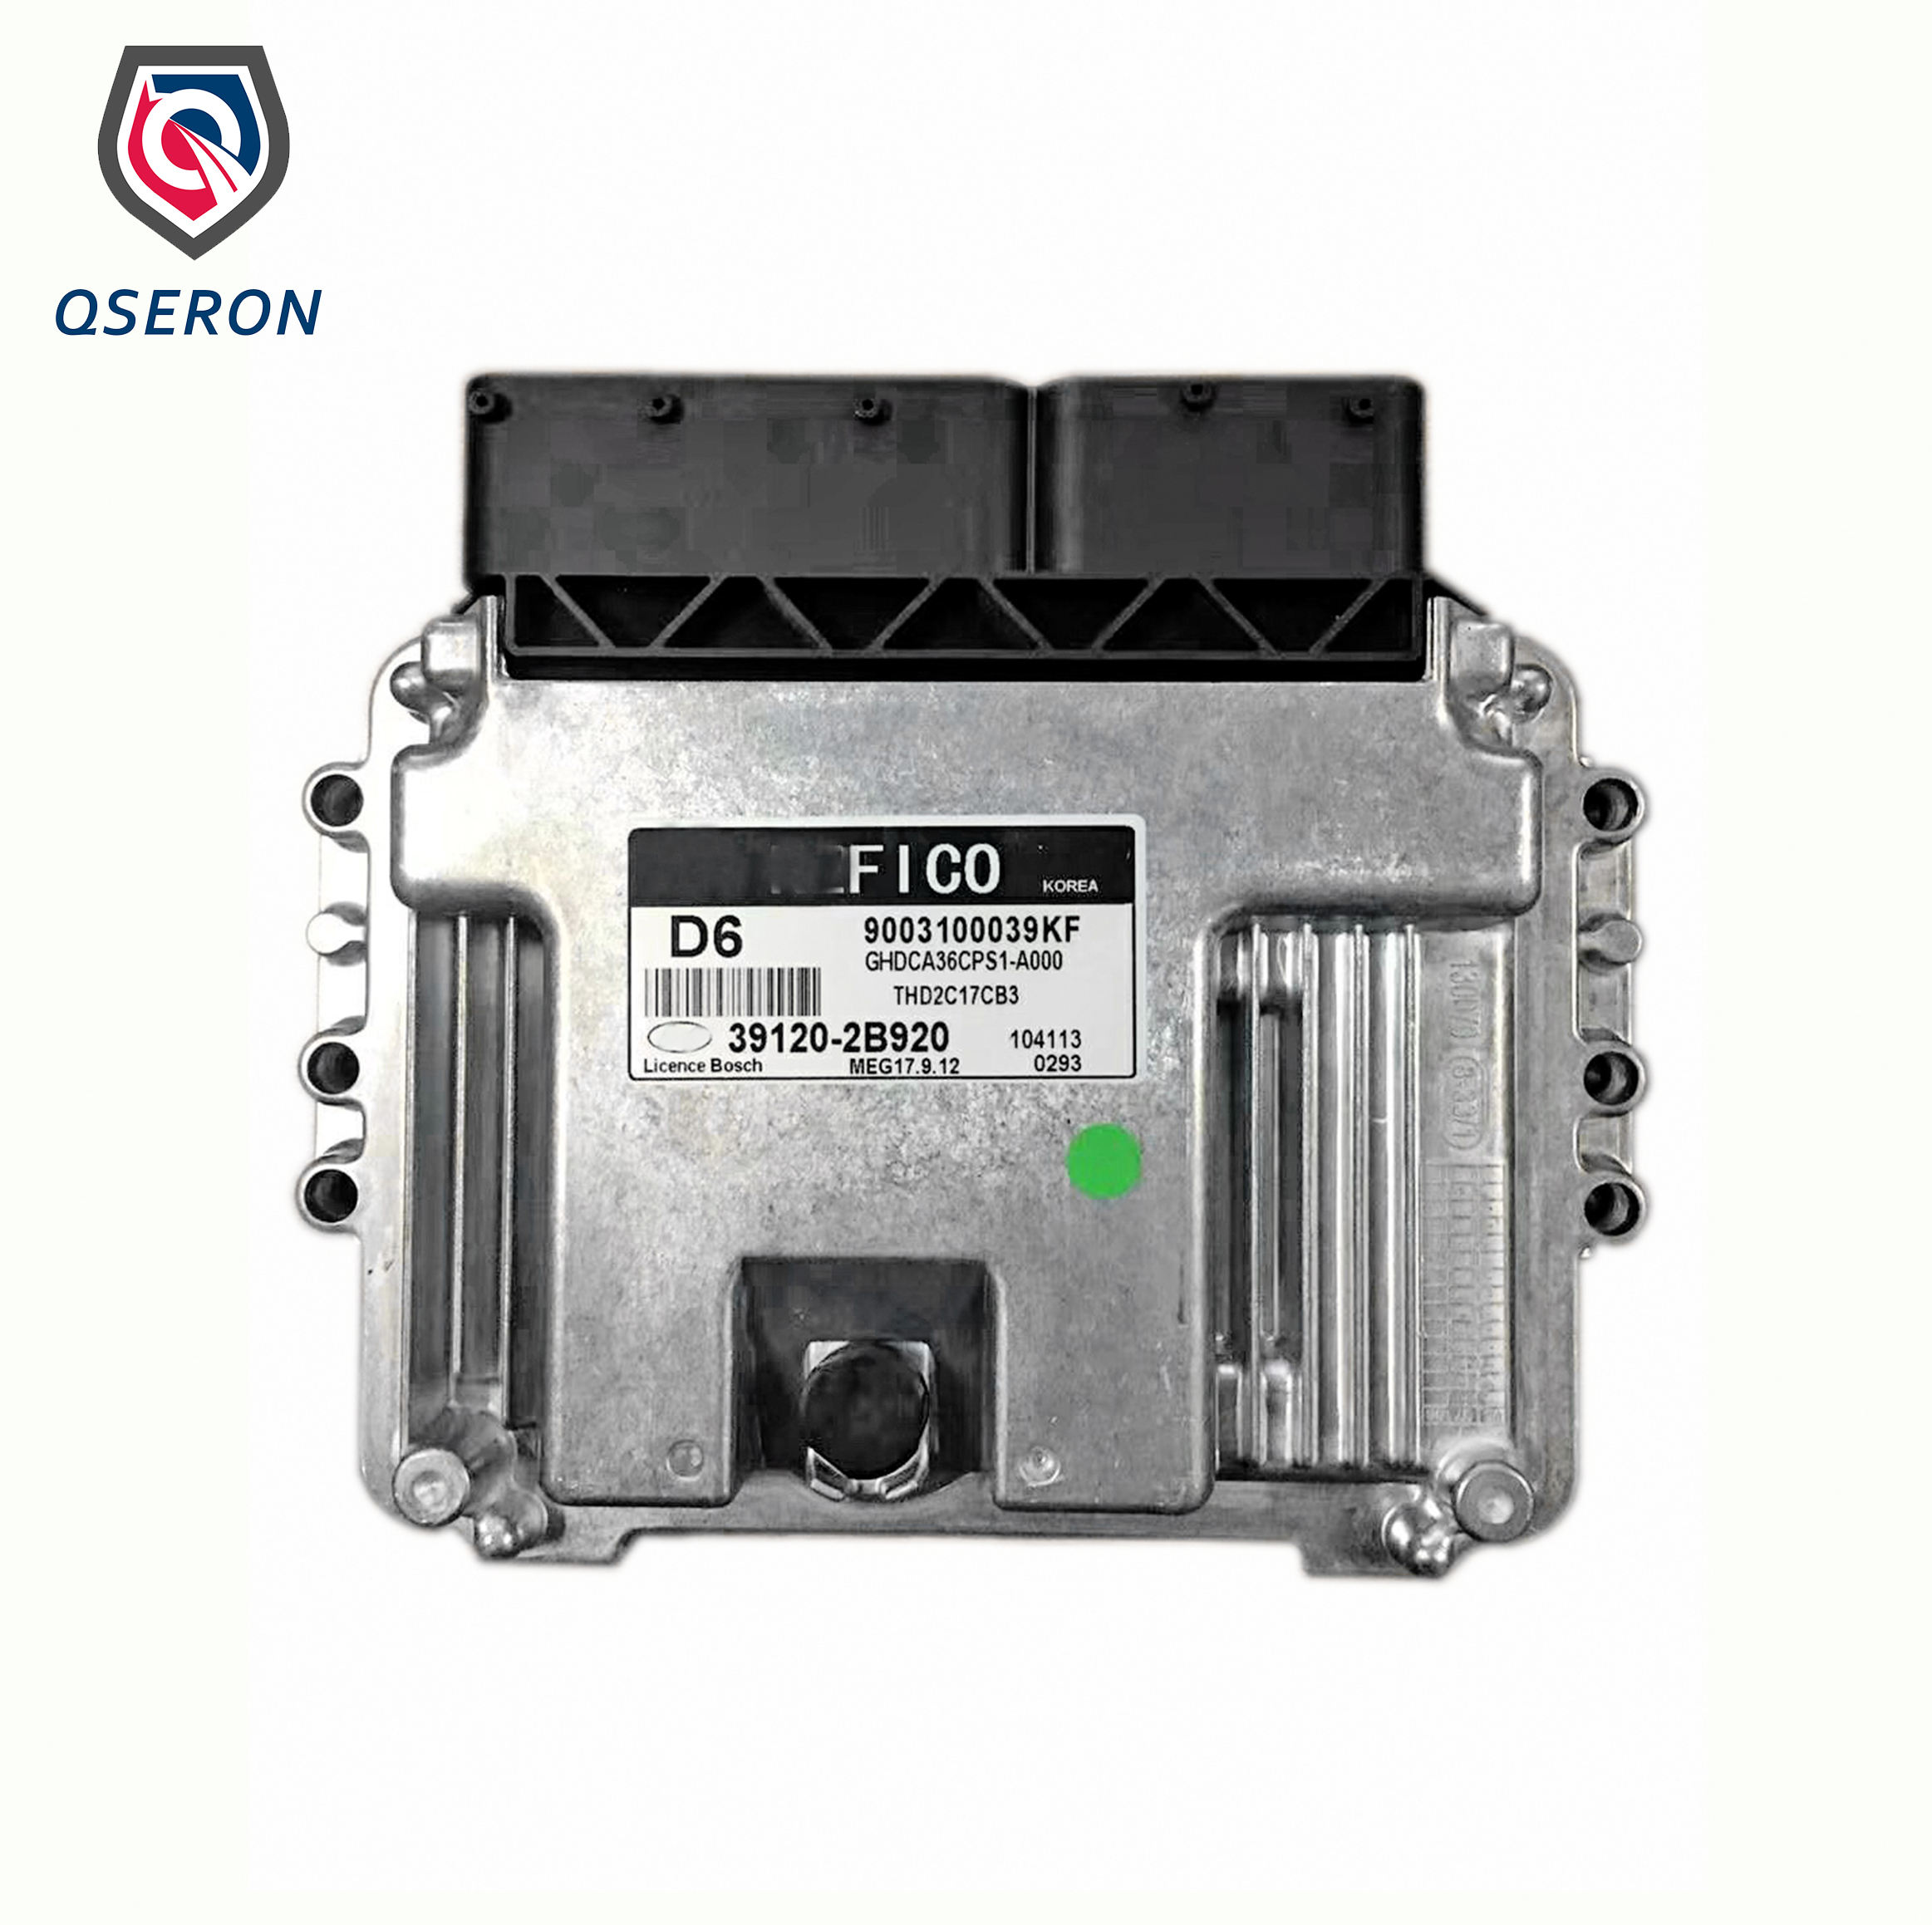 Genuine Auto Car ECU Engine Parts Electronic Control Unit Computer Module Board ECM Motor For HYUNDAI 39120-2B920 391202B920